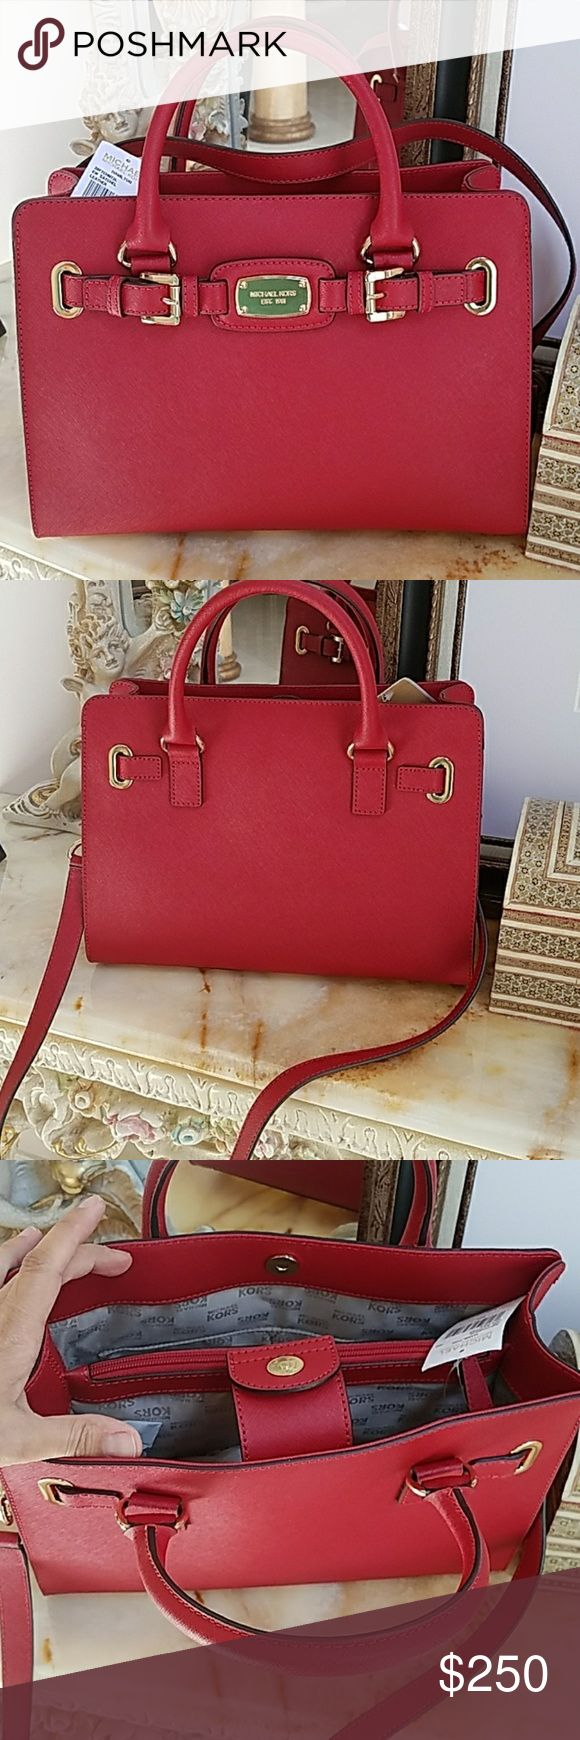 Michael Kors Hamilton Red Leather handbag purse New. 12x9x5 Beautiful color true Red. This is a beautiful Rwd color. It doesn't have any orange or pink in it. True beautiful Red it comes with a michael kors shopping bag Great Christmas Gift MICHAEL Michael Kors Bags